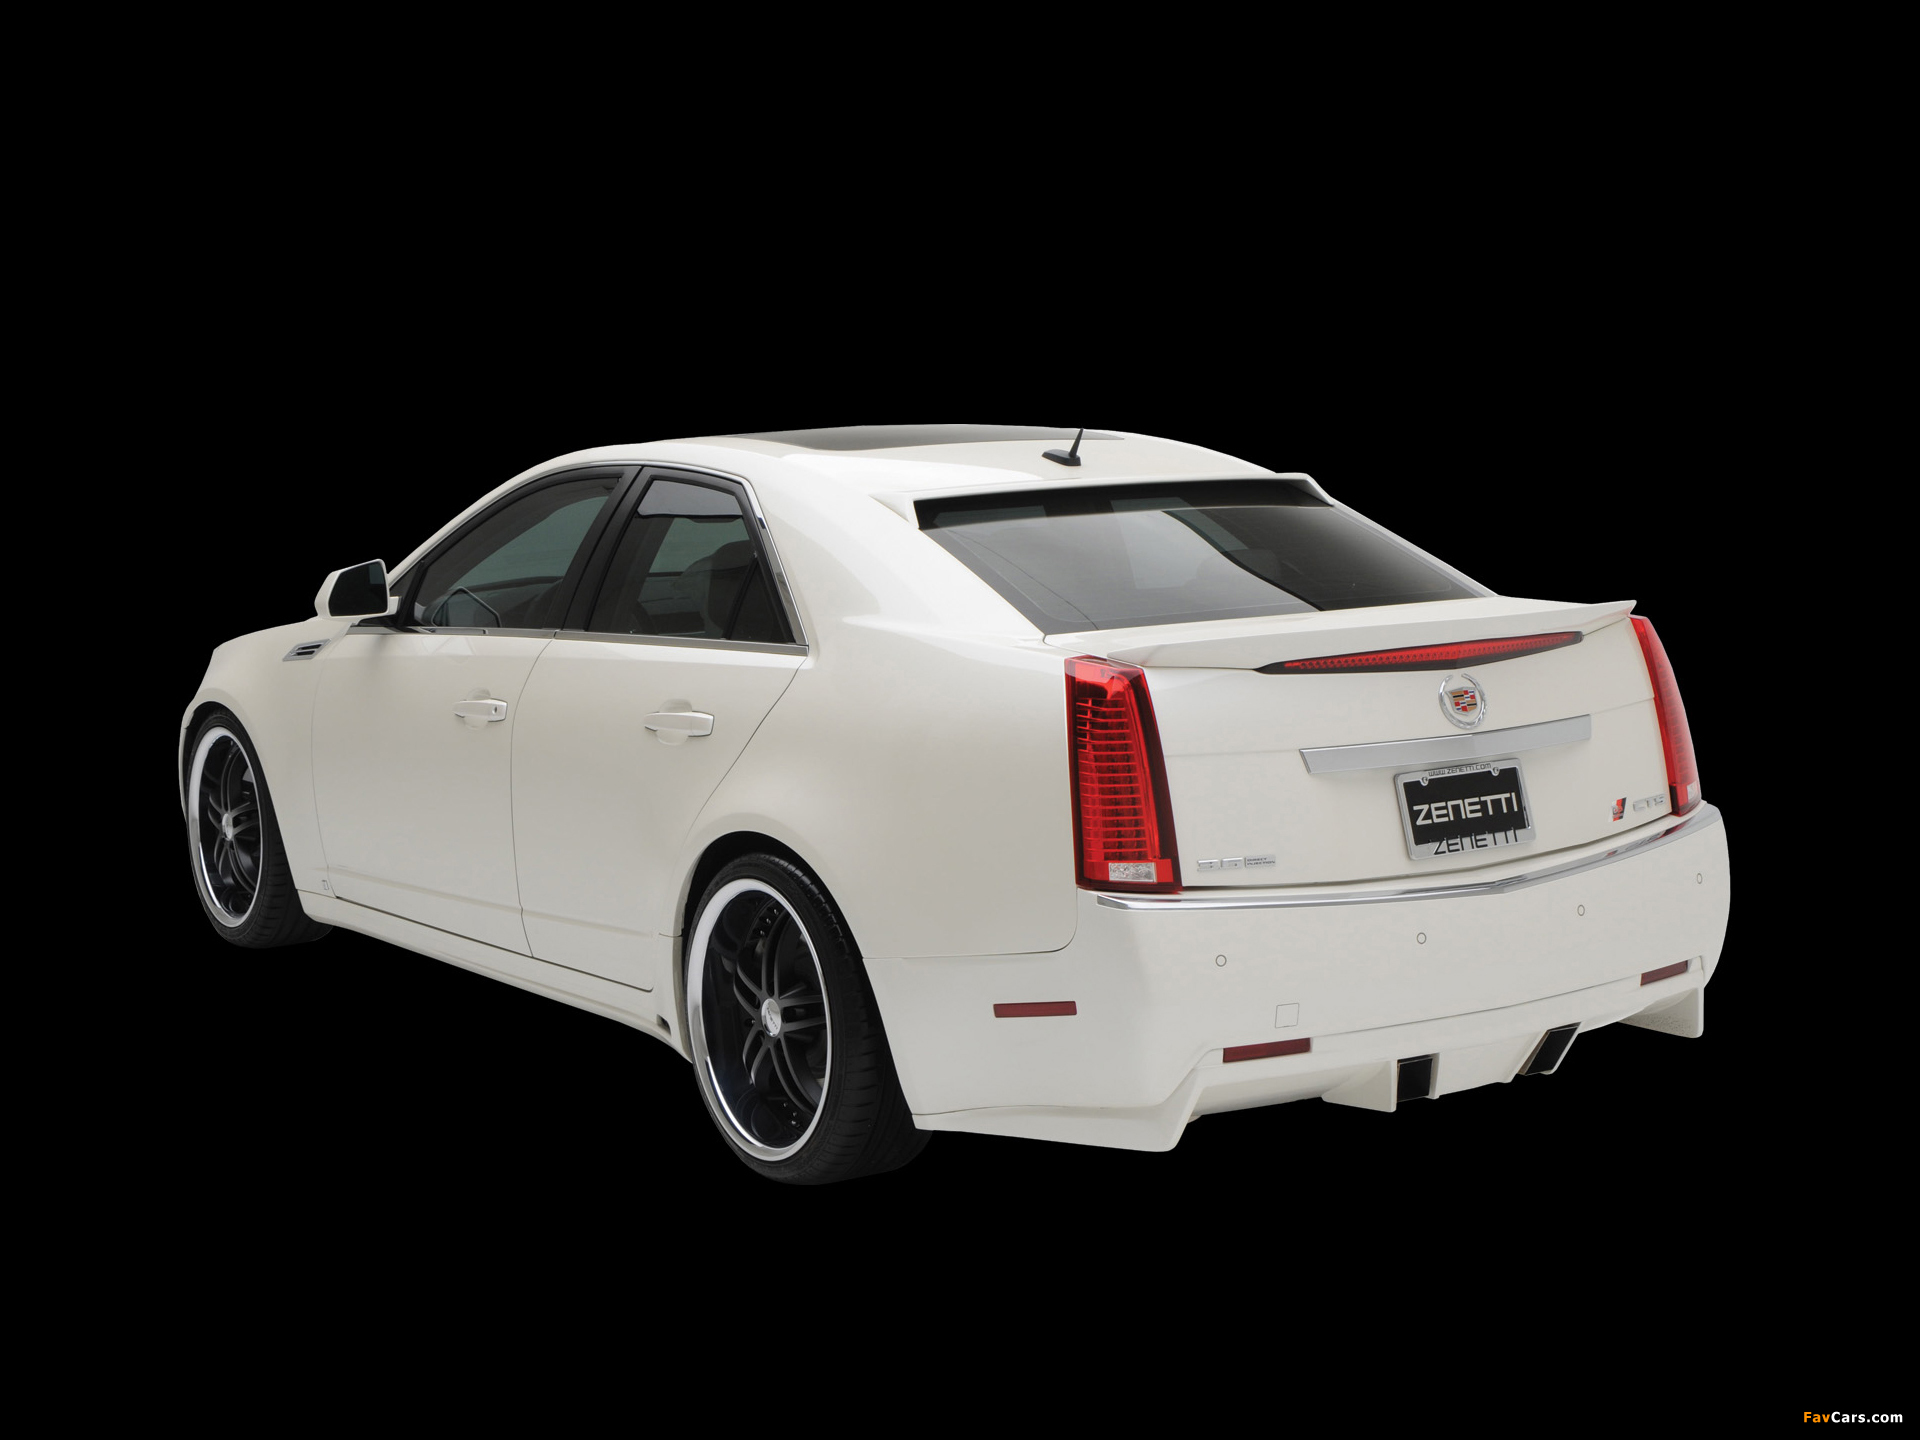 Images of Cadillac CTS by D3 2007 (1920 x 1440)